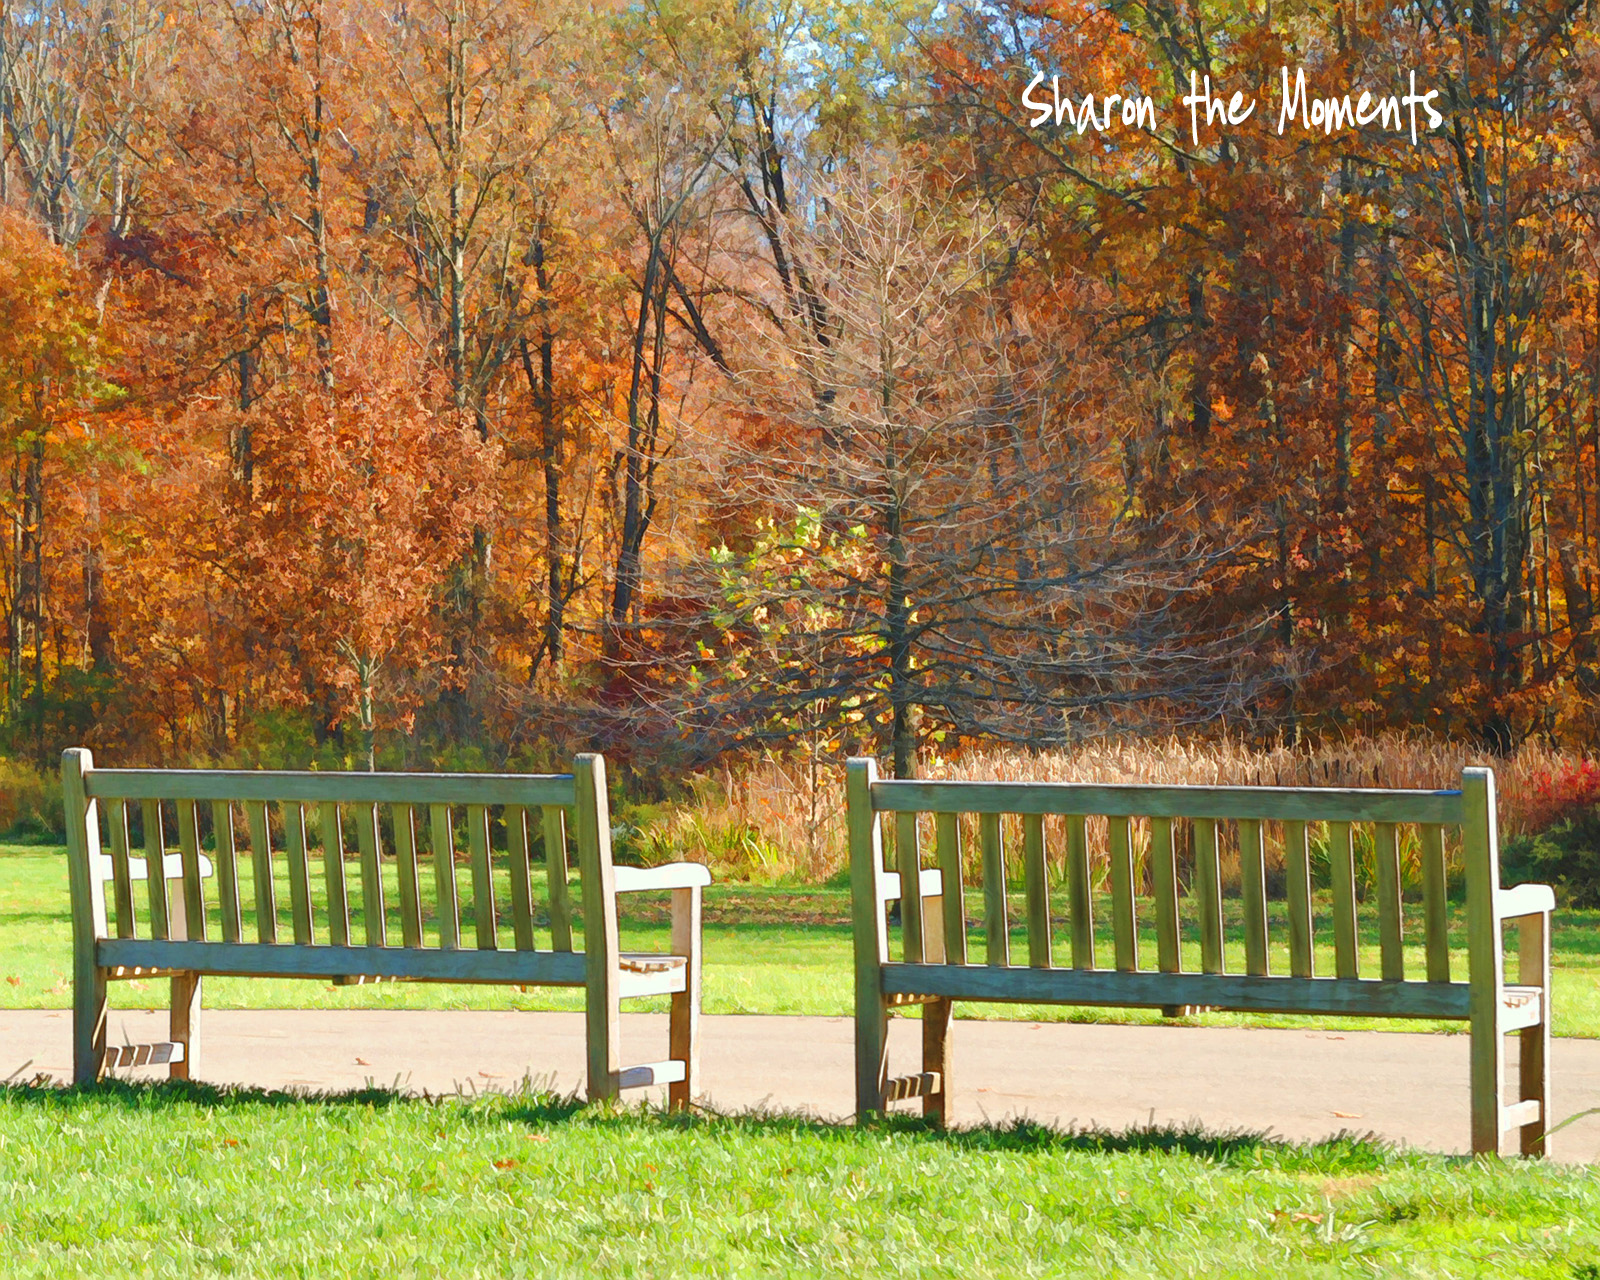 Inniswood Metro Gardens autumn color|Sharon the Moments blog